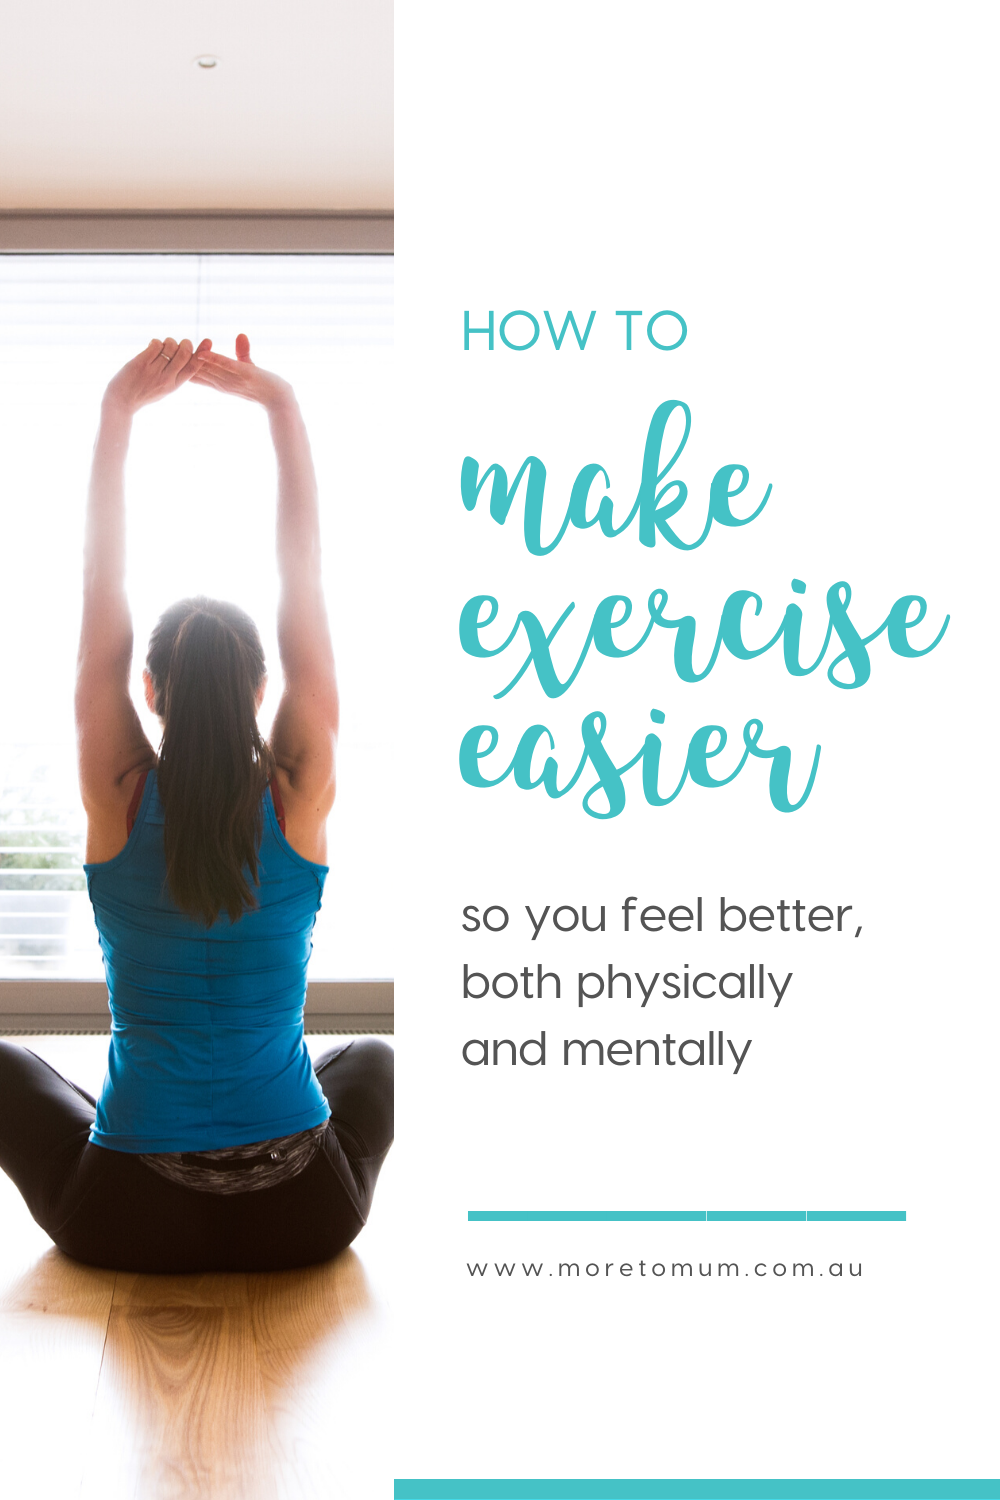 www.moretomum.com.au make exercise easier